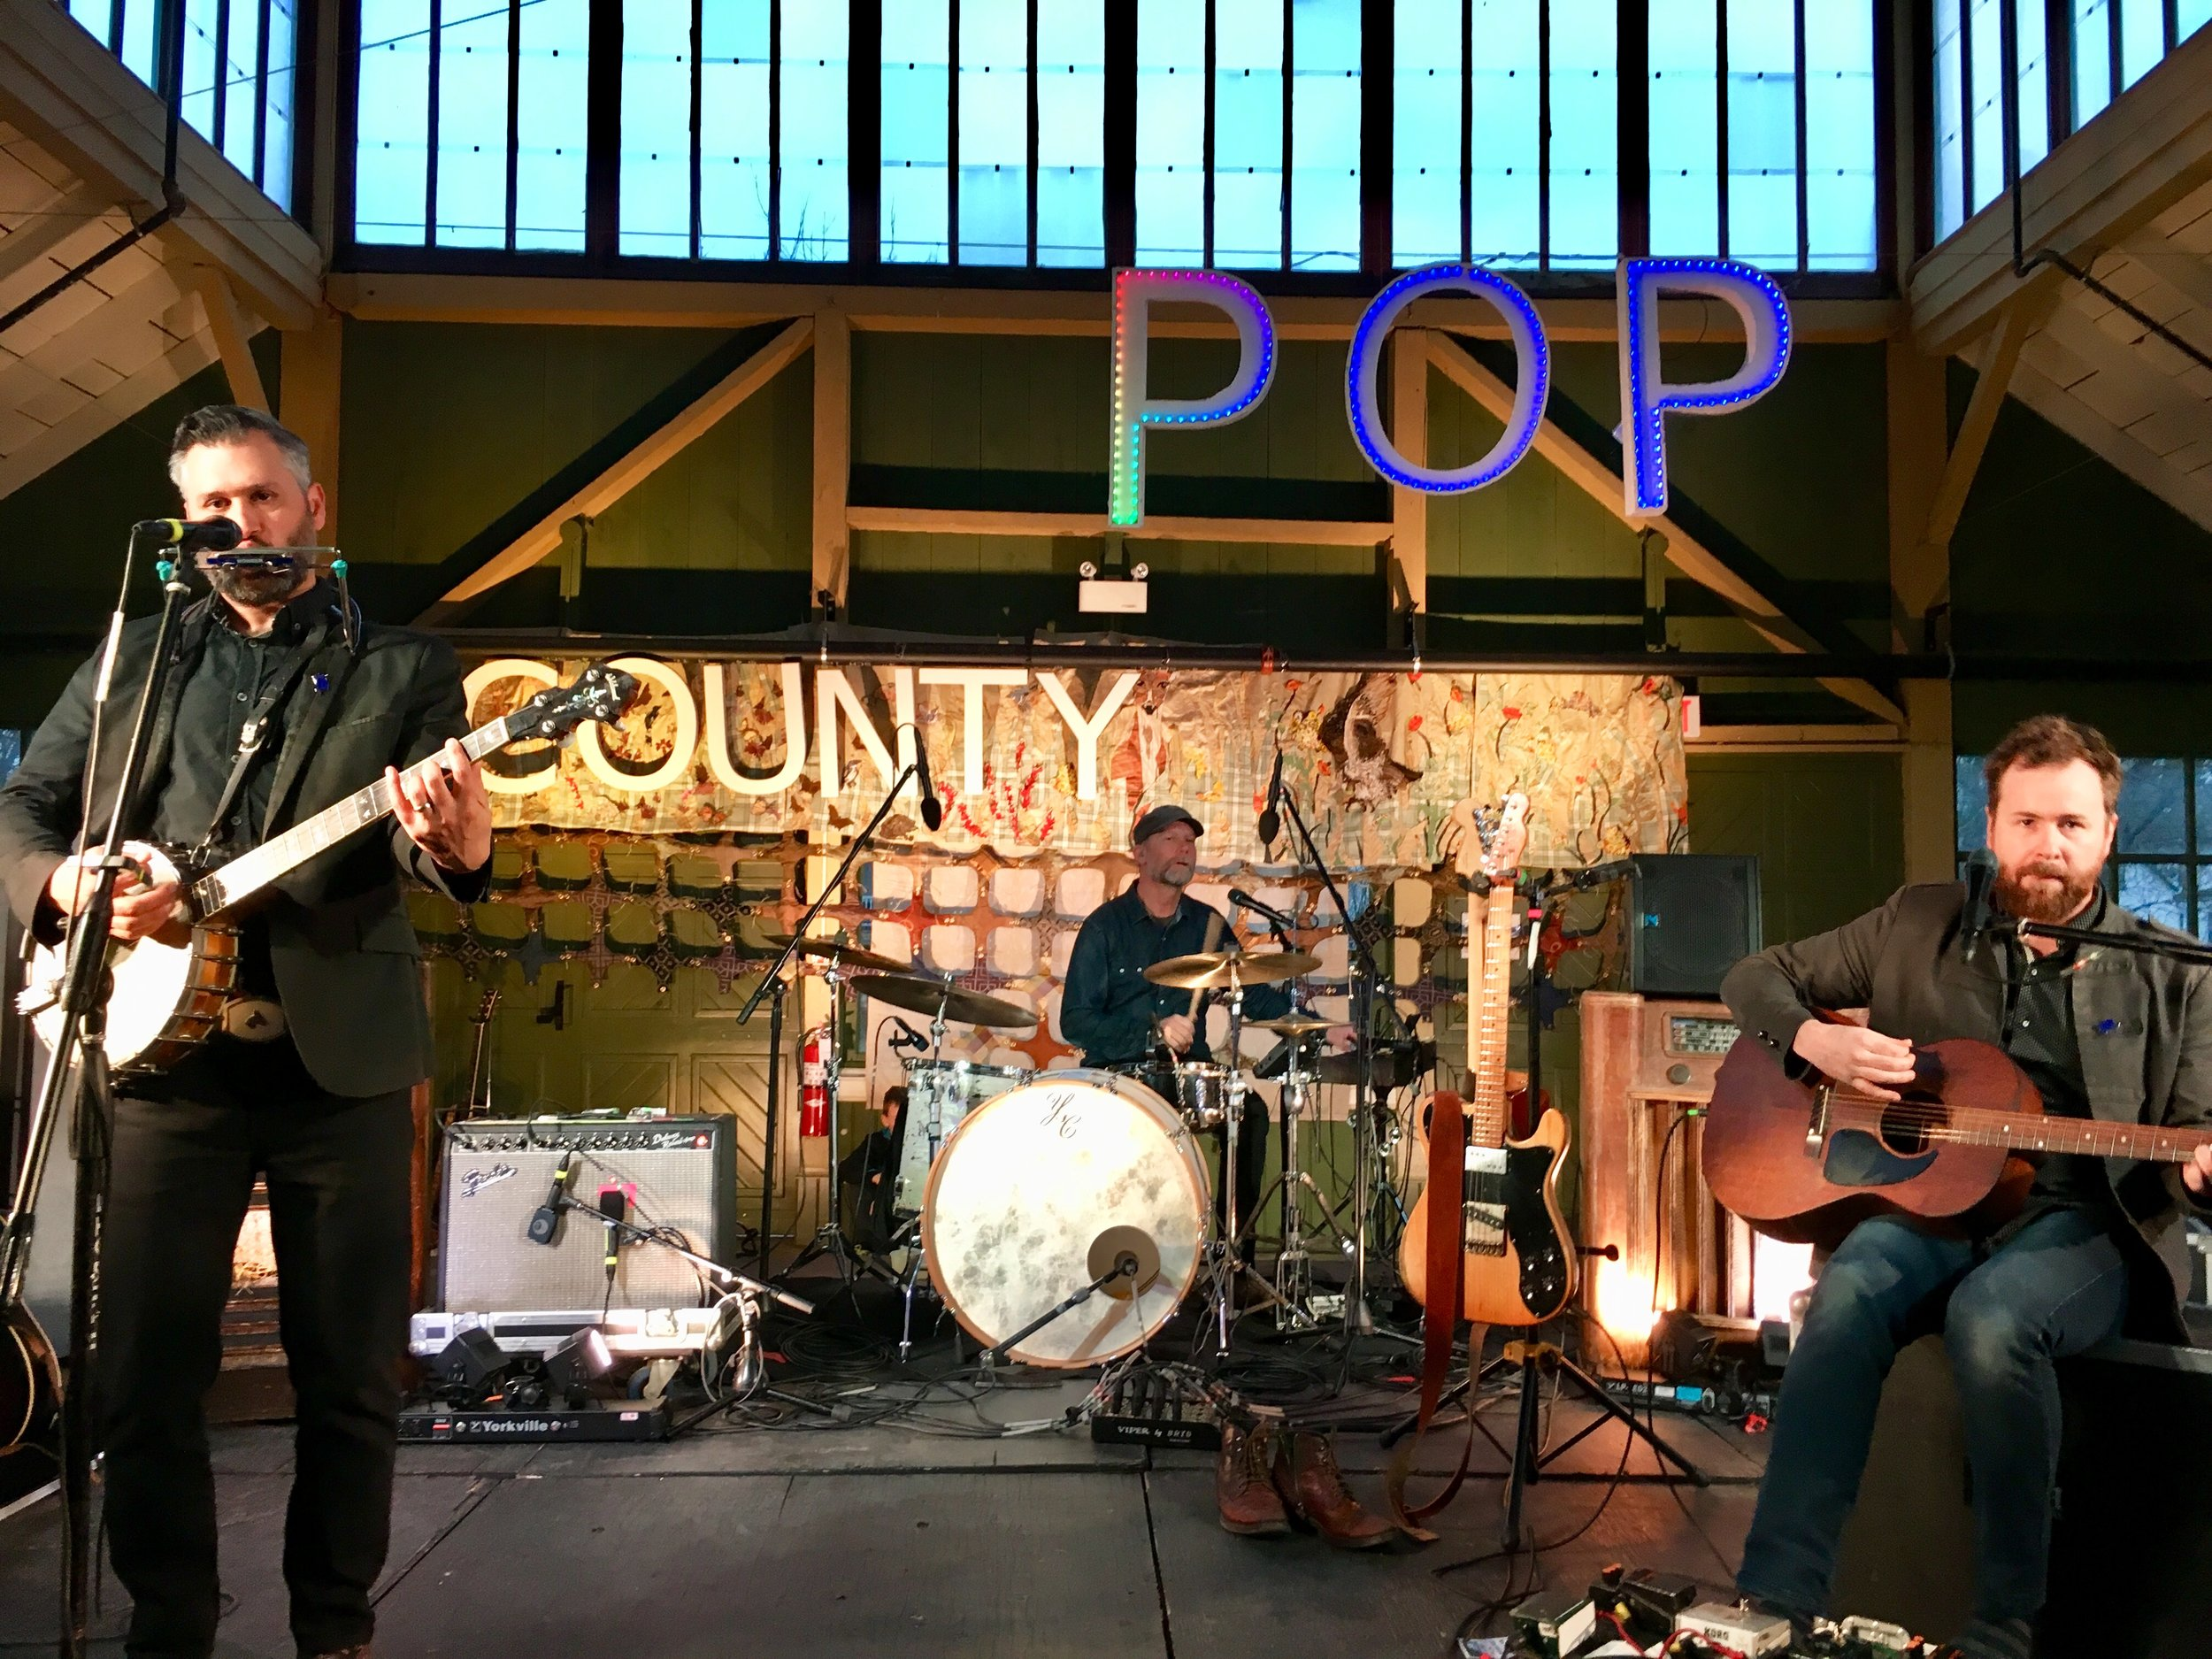 Above: Art On Stage,  Meadow Life  at County Pop 2018 with headliners, ELLIOTT BROOD. Photo by Suendrini